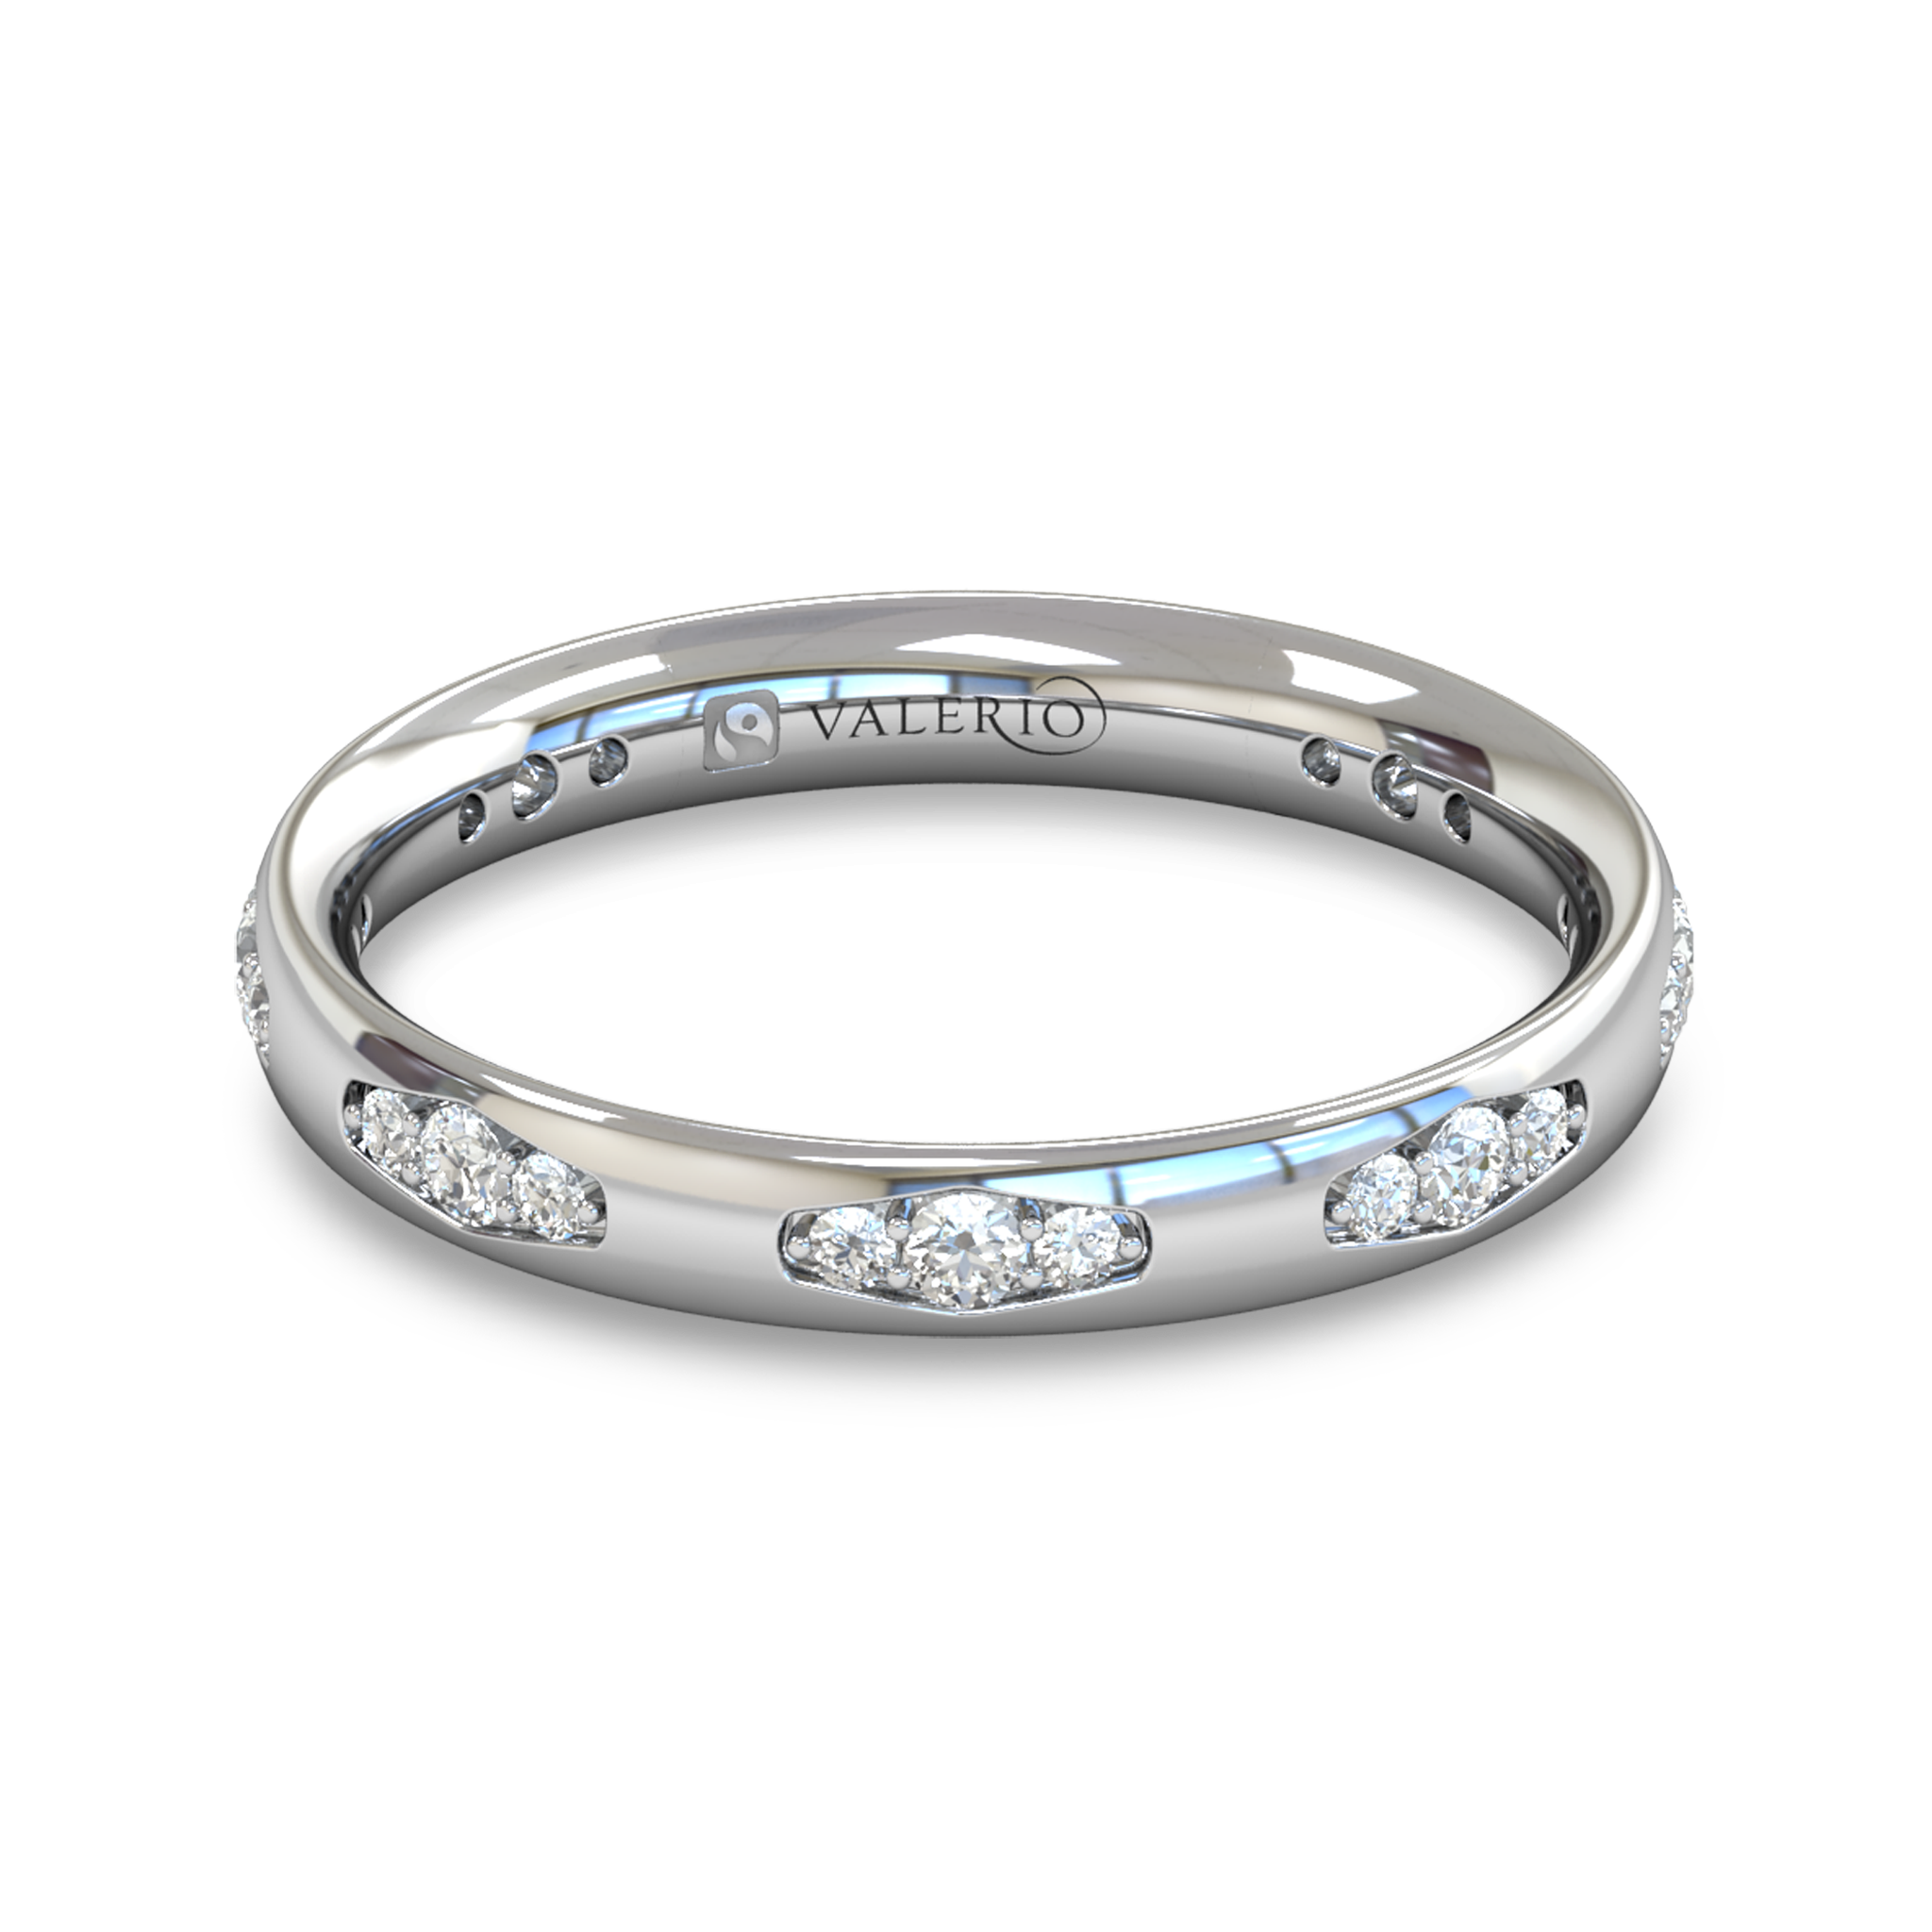 Fairtrade Gold Vintage Style Women s Wedding Ring with Diamond in 18K White Gold